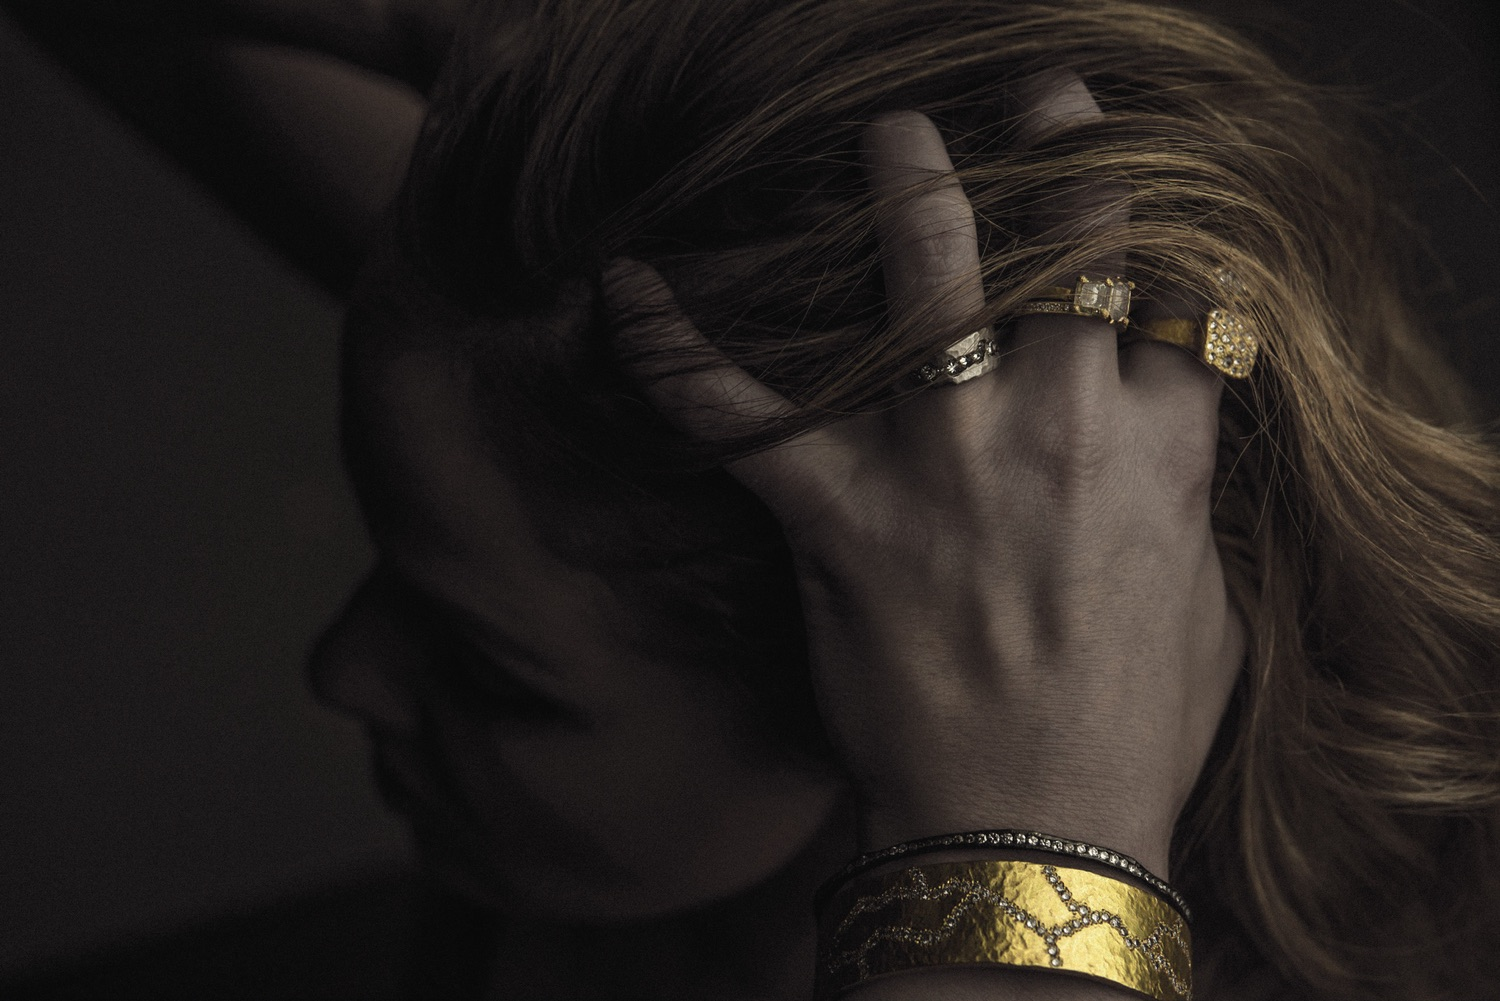 The Jewel - Todd Pownell Tap - Lookbook - Model Wearing Gold Rings and Bracelet